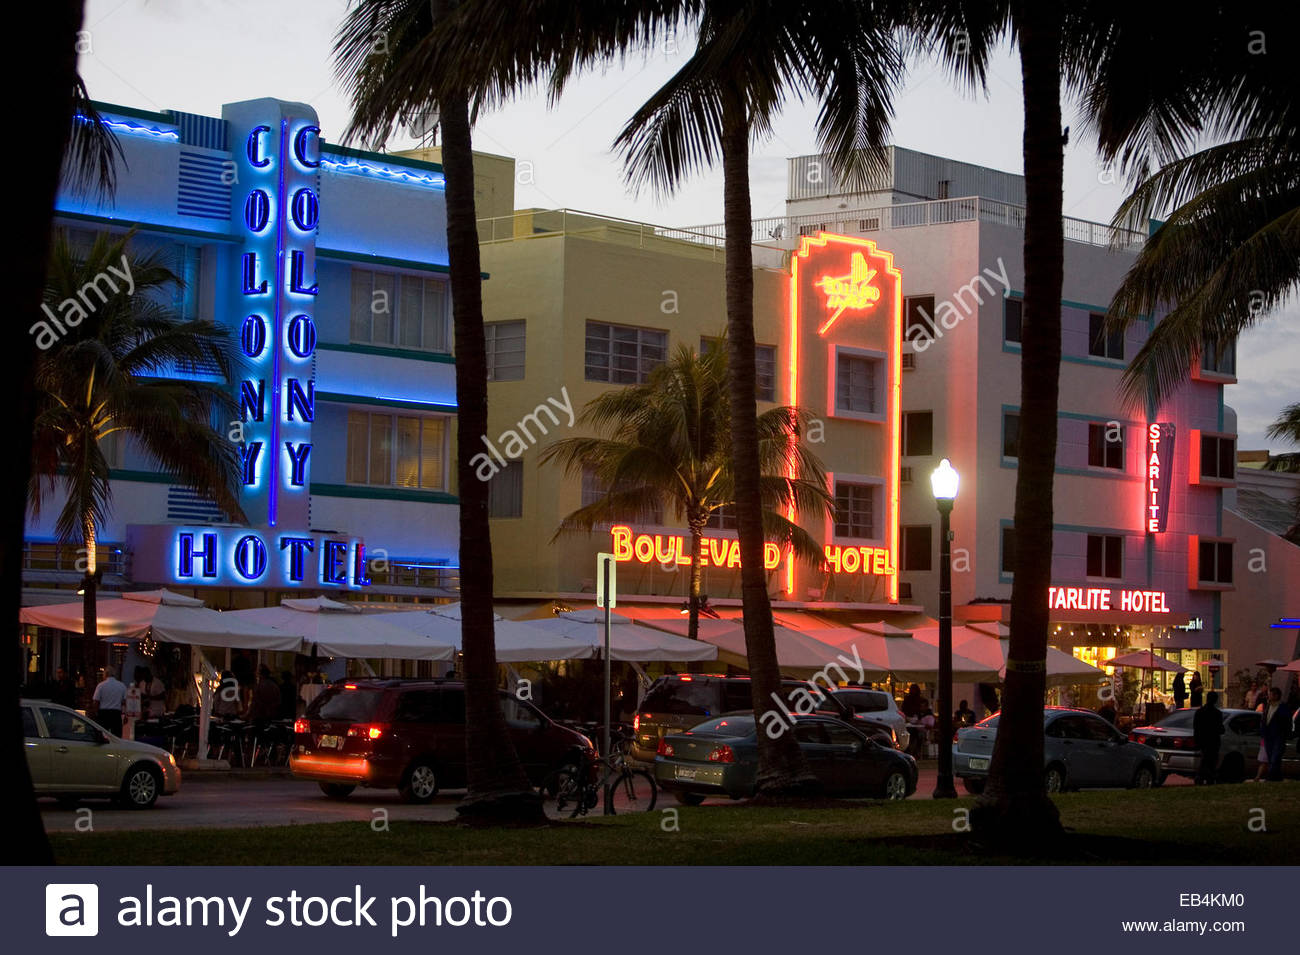 Neon signs adorning businesses and restaurants along Ocean Drive in the historic art deco South Beach. - Stock Image